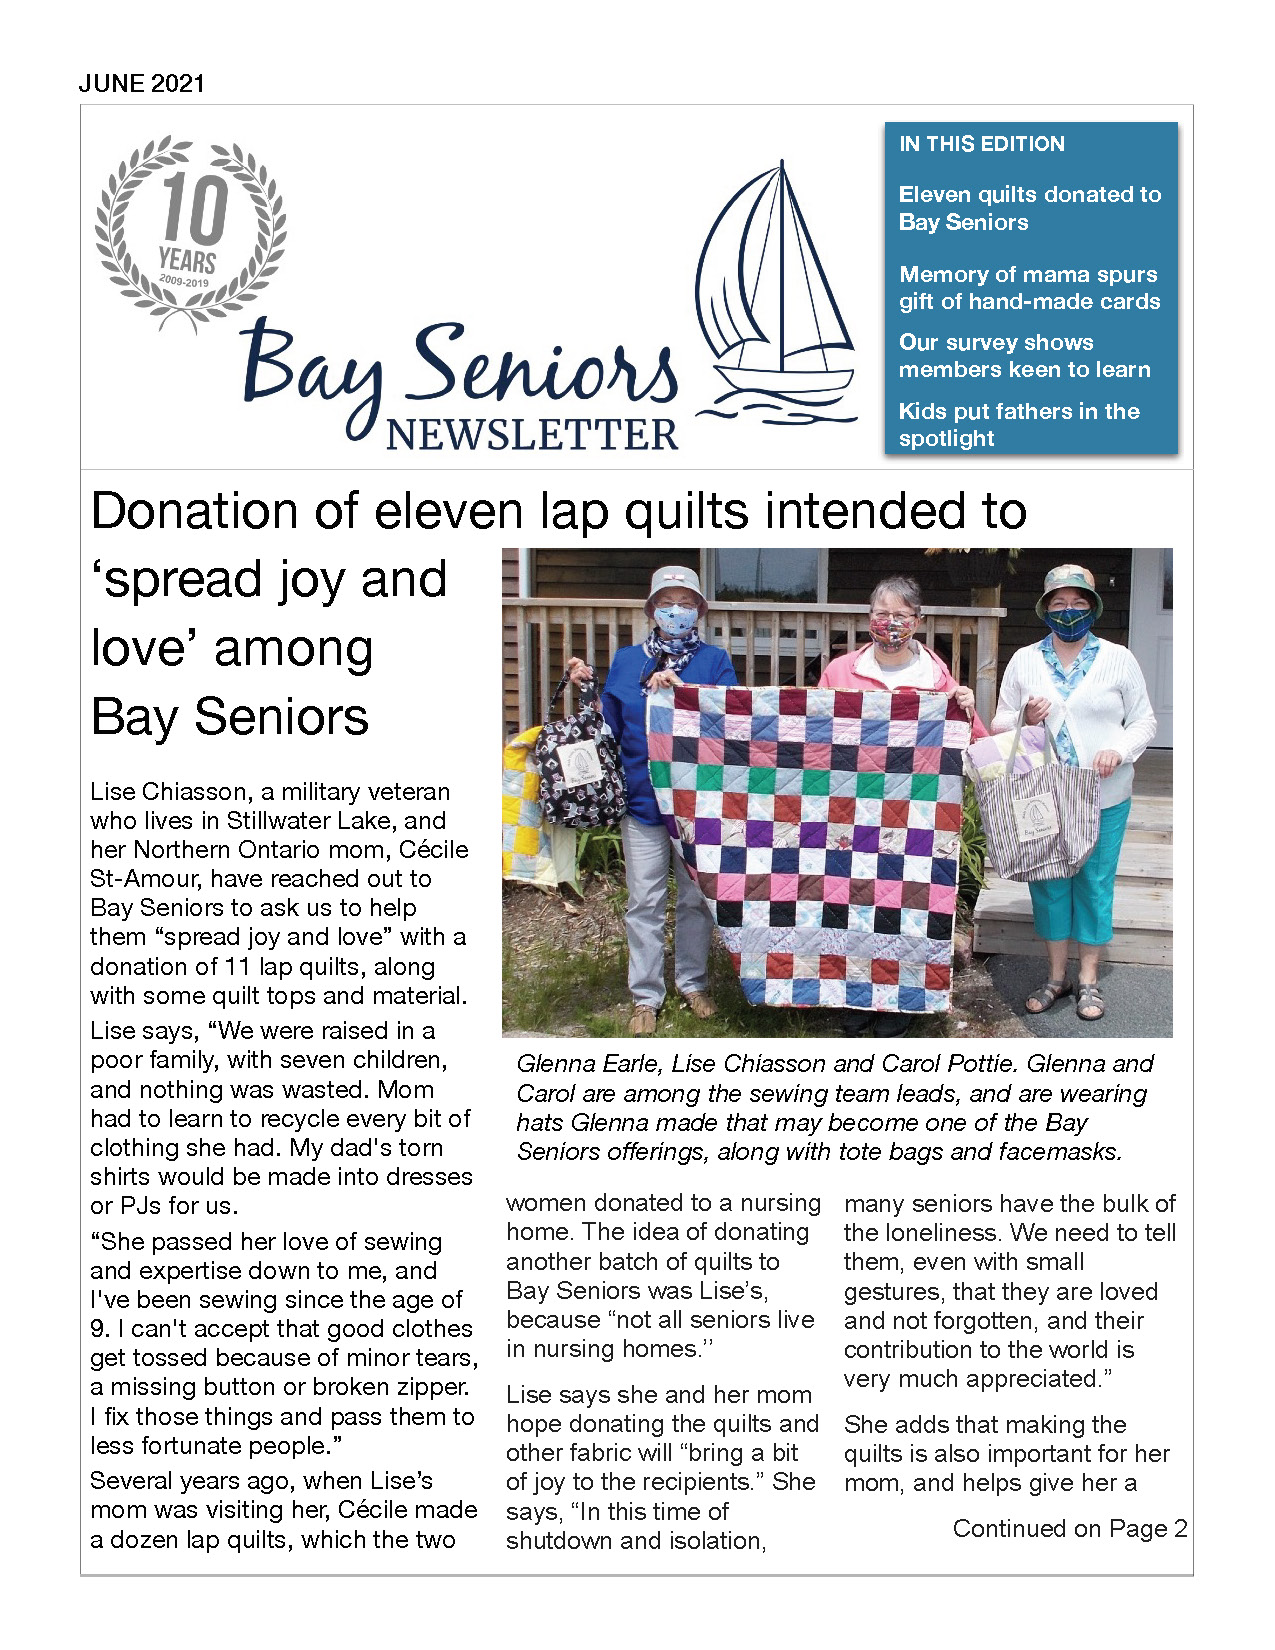 062021BaySeniorsNewsletter_COVER_Page_1